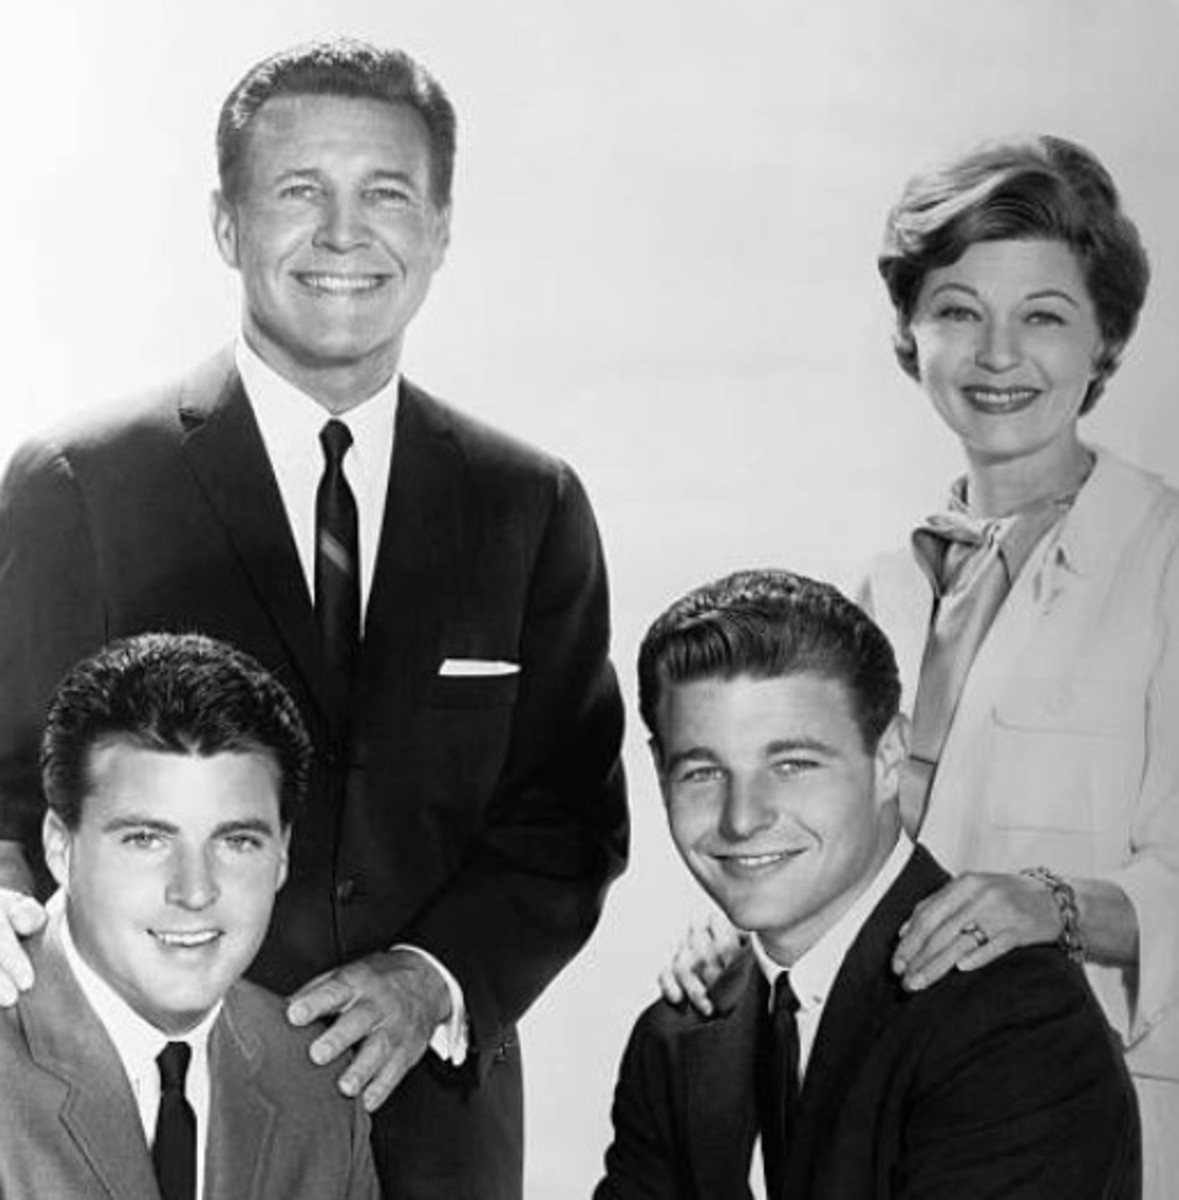 Top row: Ozzie and Harriet, bottom row: Ricky and David